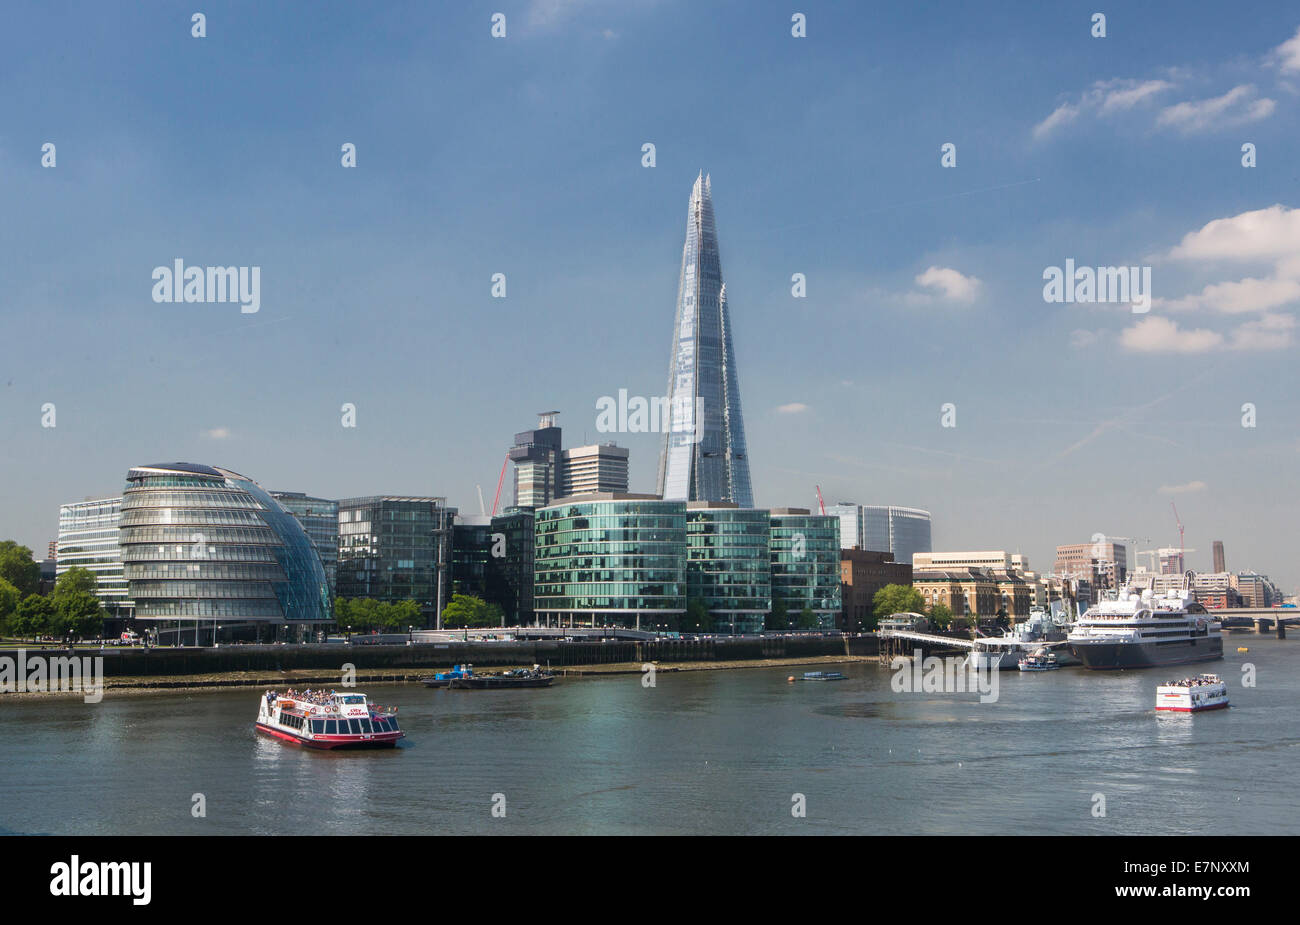 Building, City, City Hall, London, England, Shard, UK, architecture, boat, new, river, Thames, river, tourism, tower, - Stock Image